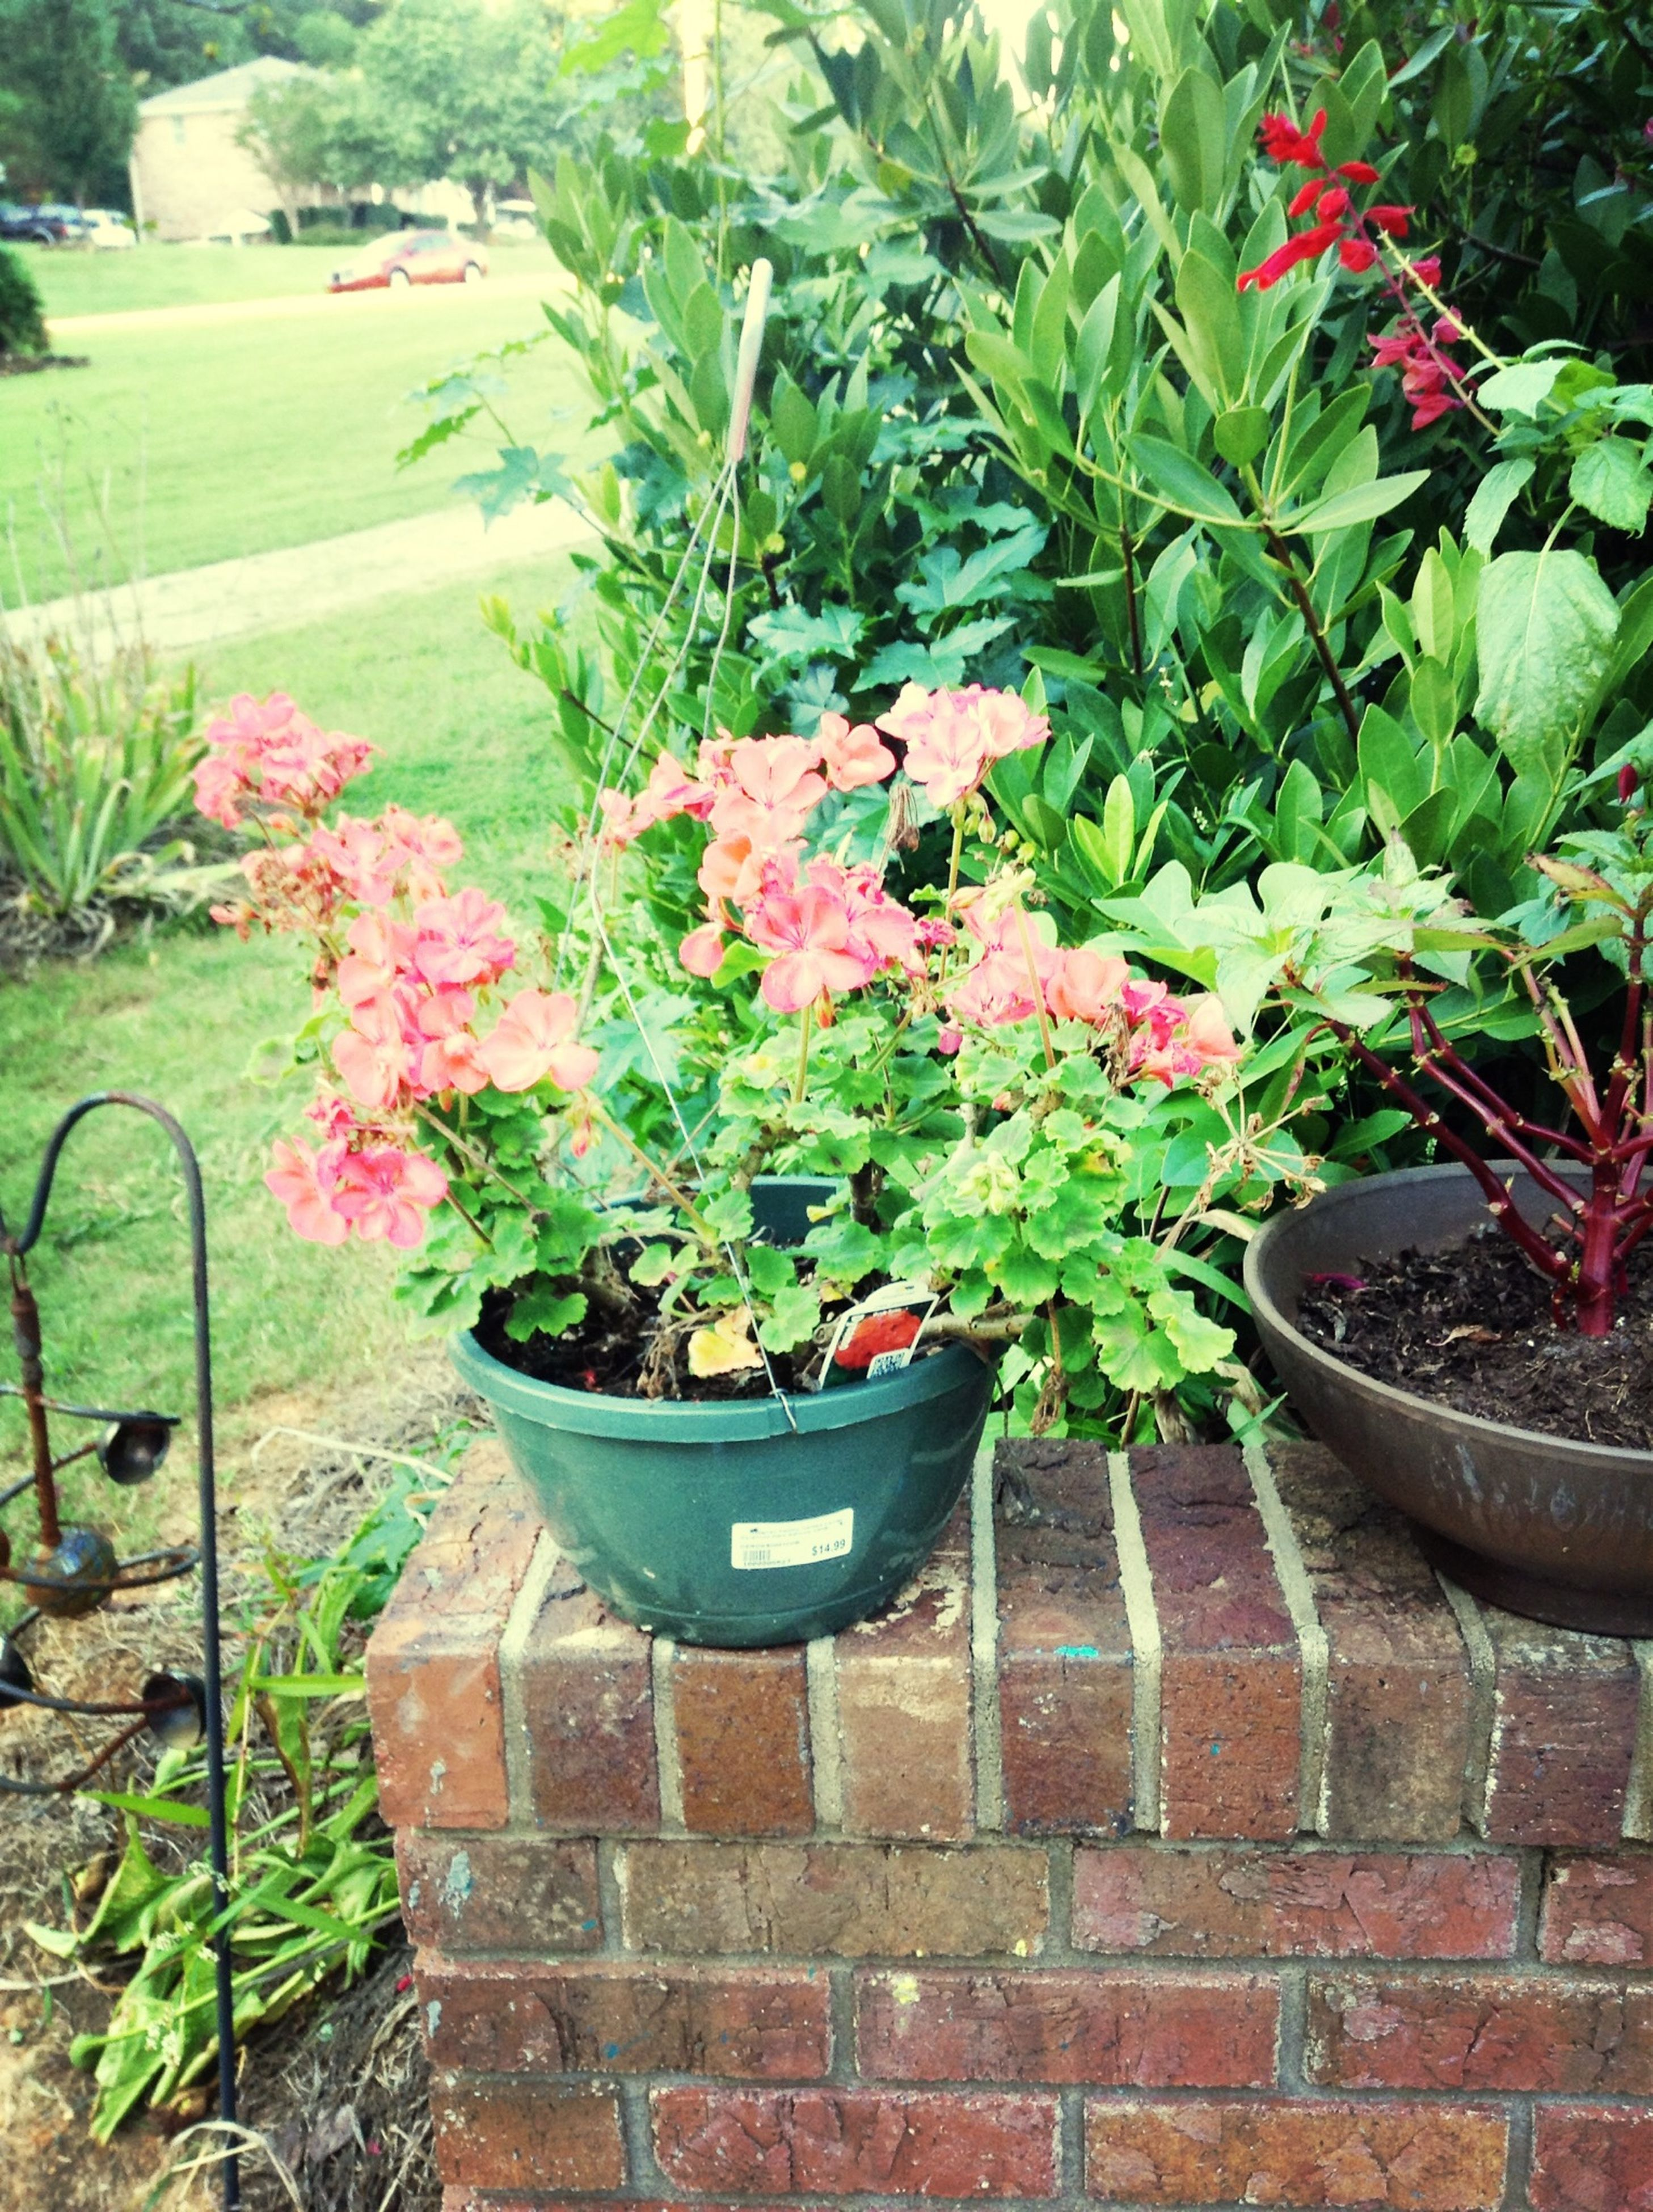 plant, flower, growth, potted plant, green color, freshness, leaf, nature, beauty in nature, flower pot, fragility, front or back yard, high angle view, growing, outdoors, day, green, no people, formal garden, blooming